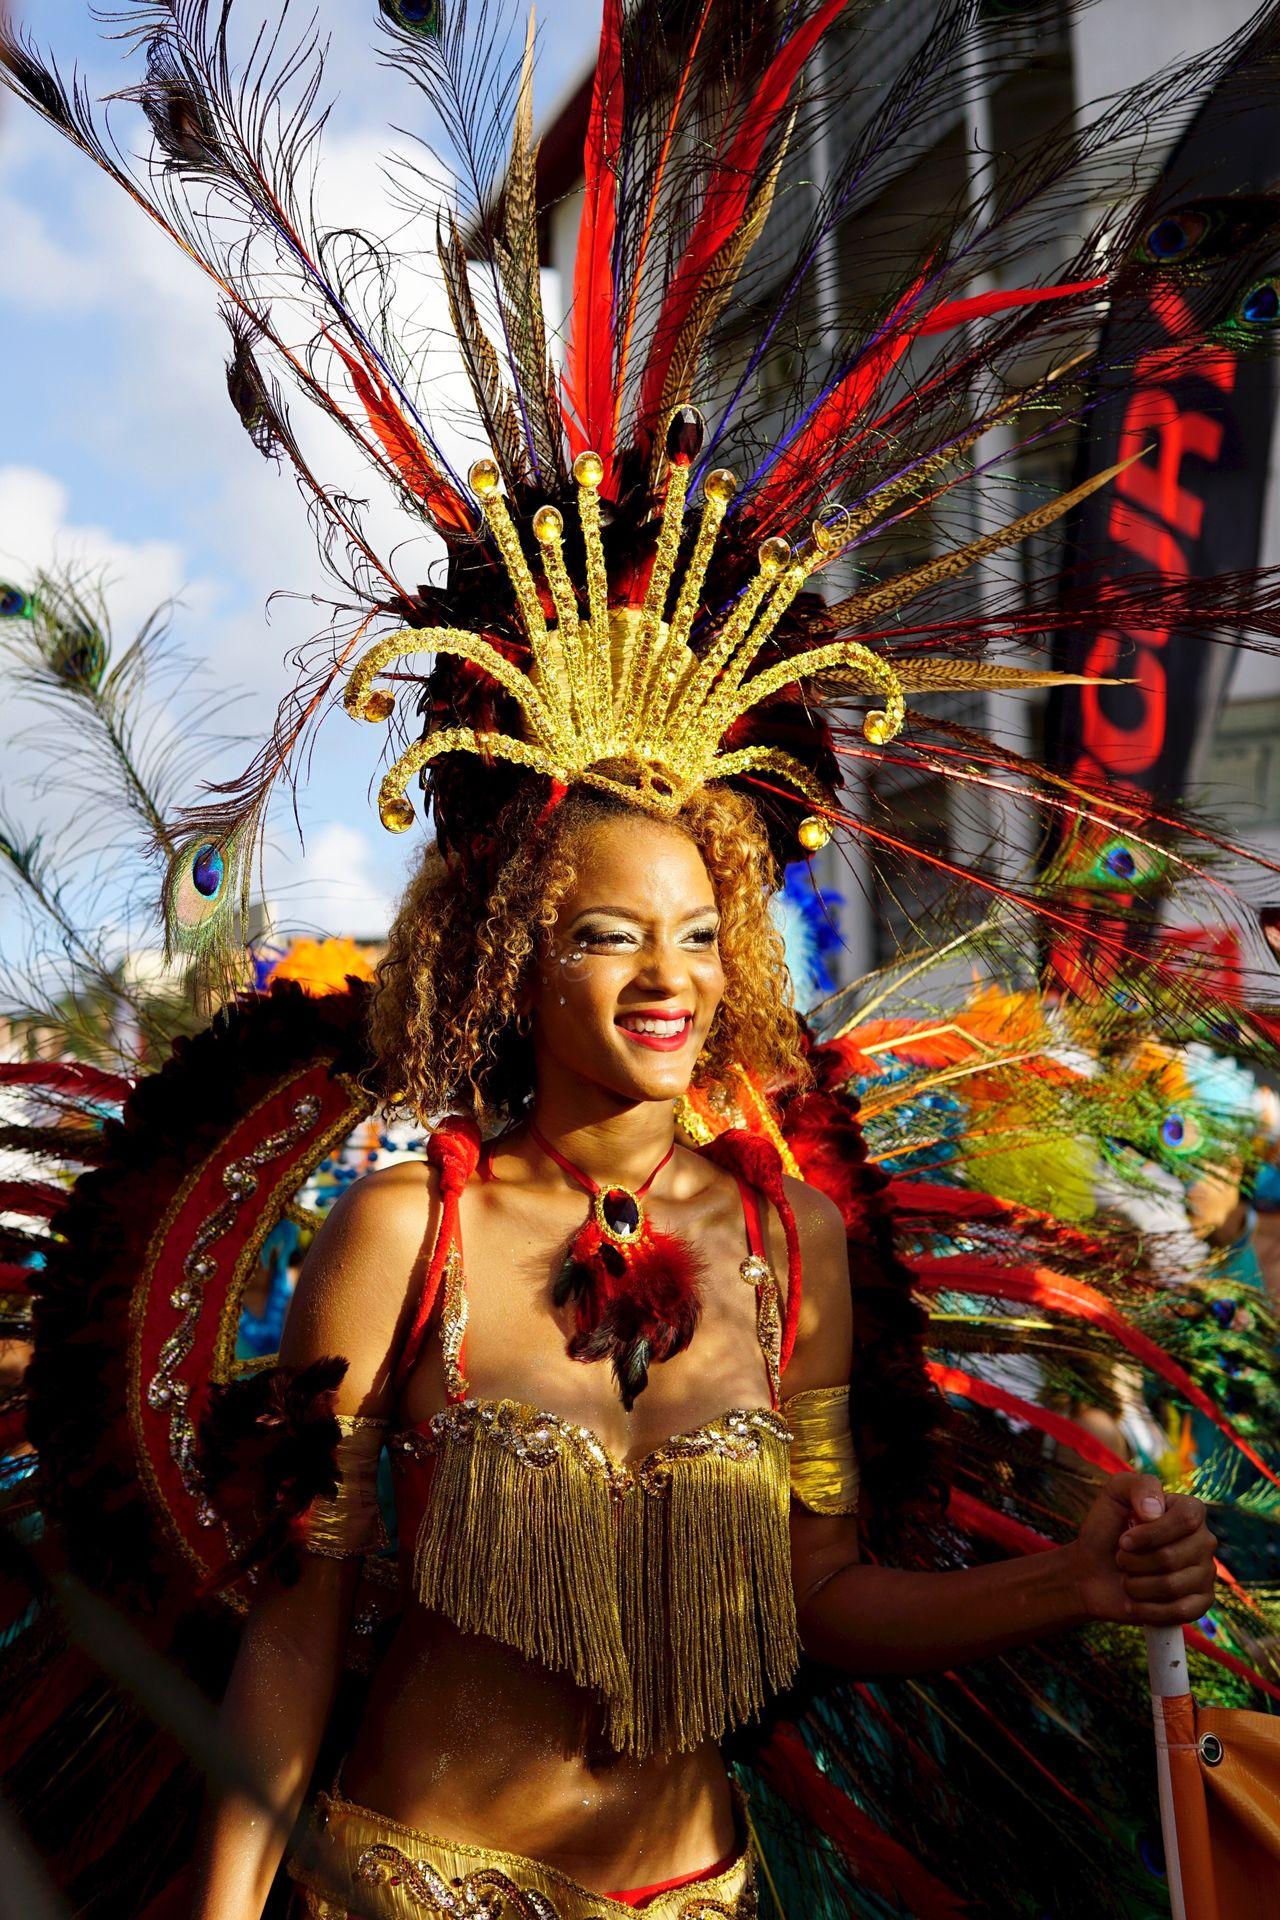 Carnival Crowds And Details Cultures Arts Culture And Entertainment Headdress One Person Only Women Dancer Traditional Clothing One Woman Only Multi Colored Performance Dancing Lifestyles Traditional Dancing Beauty Outdoors One Young Woman Only Portrait People Beautiful Woman Martinique Caribbean